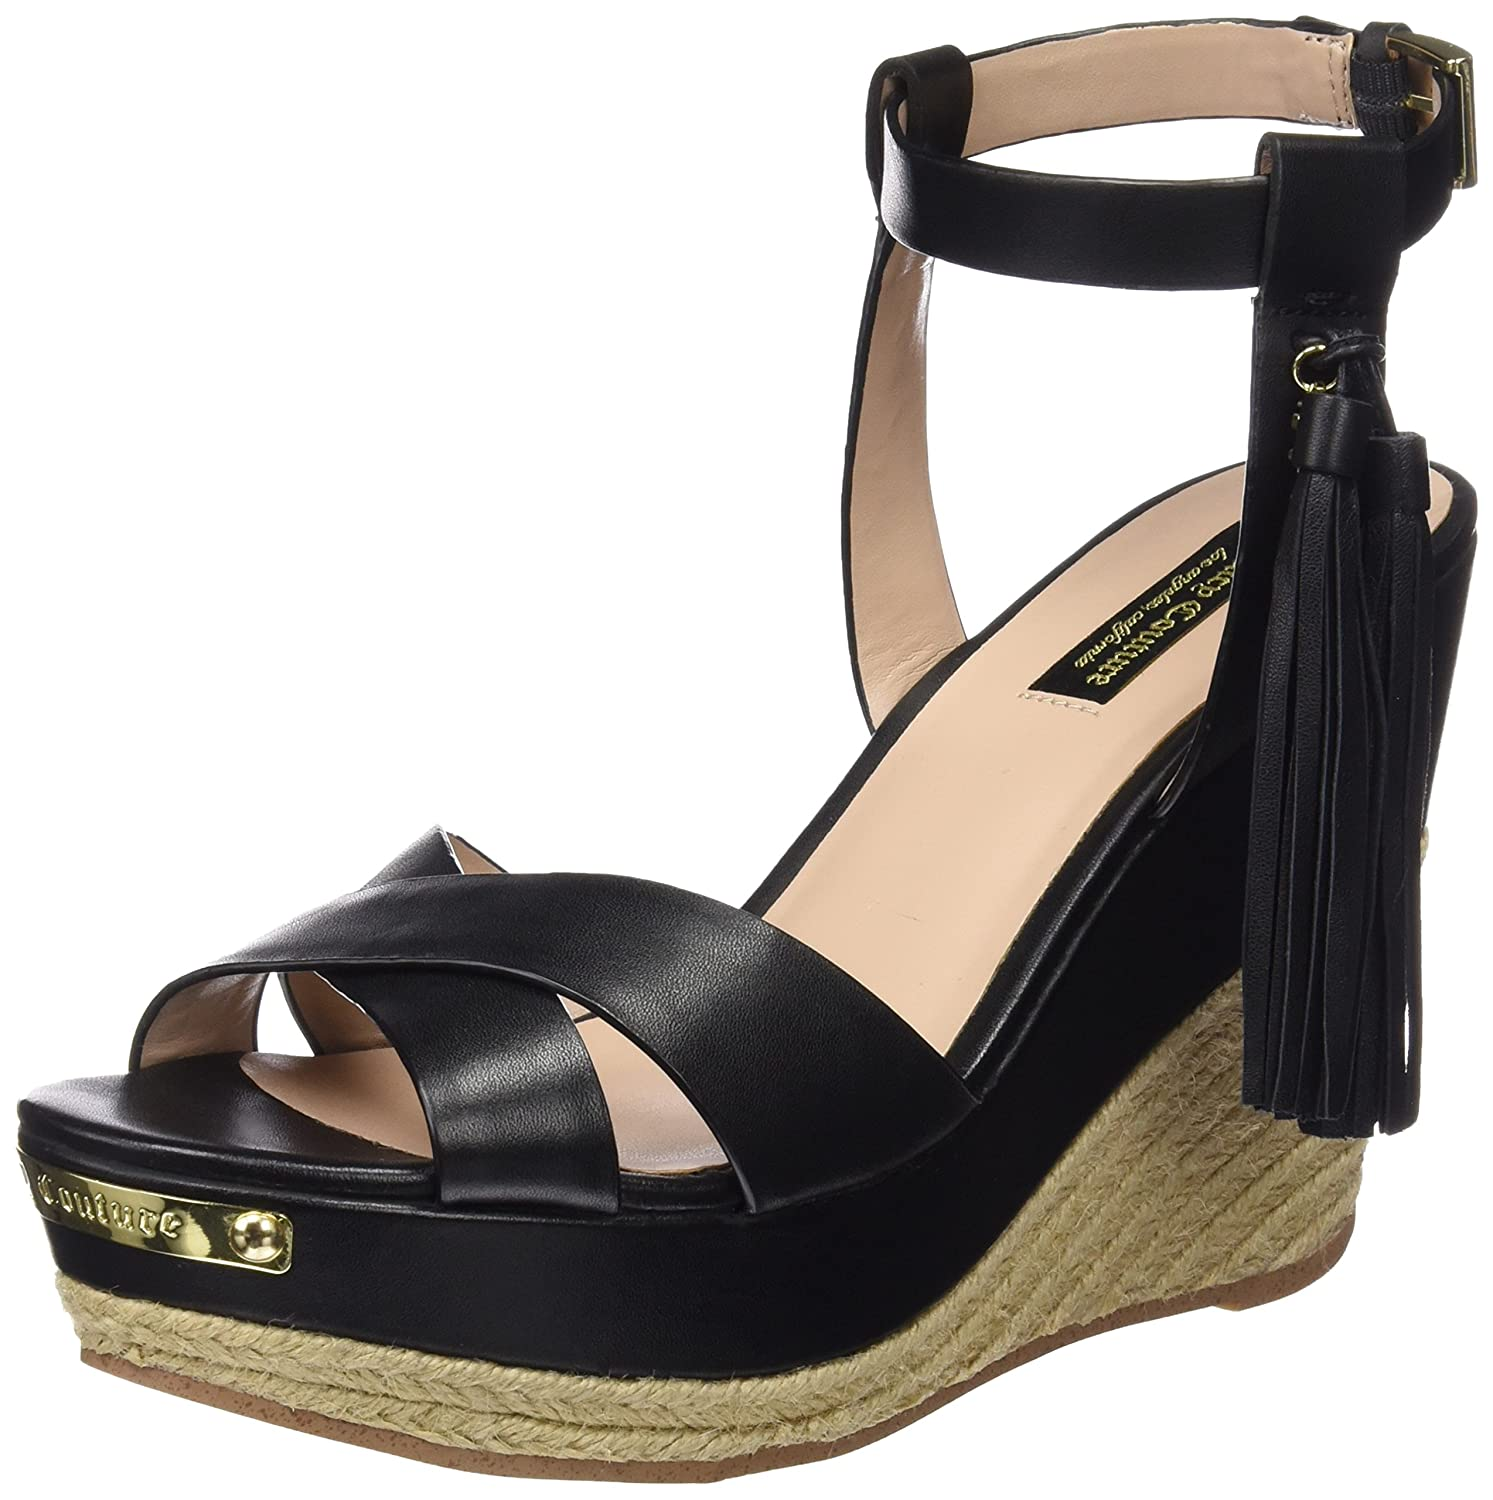 Juicy Couture Damen Simone Sandalen  38.5 EU|Pitch Black Leather